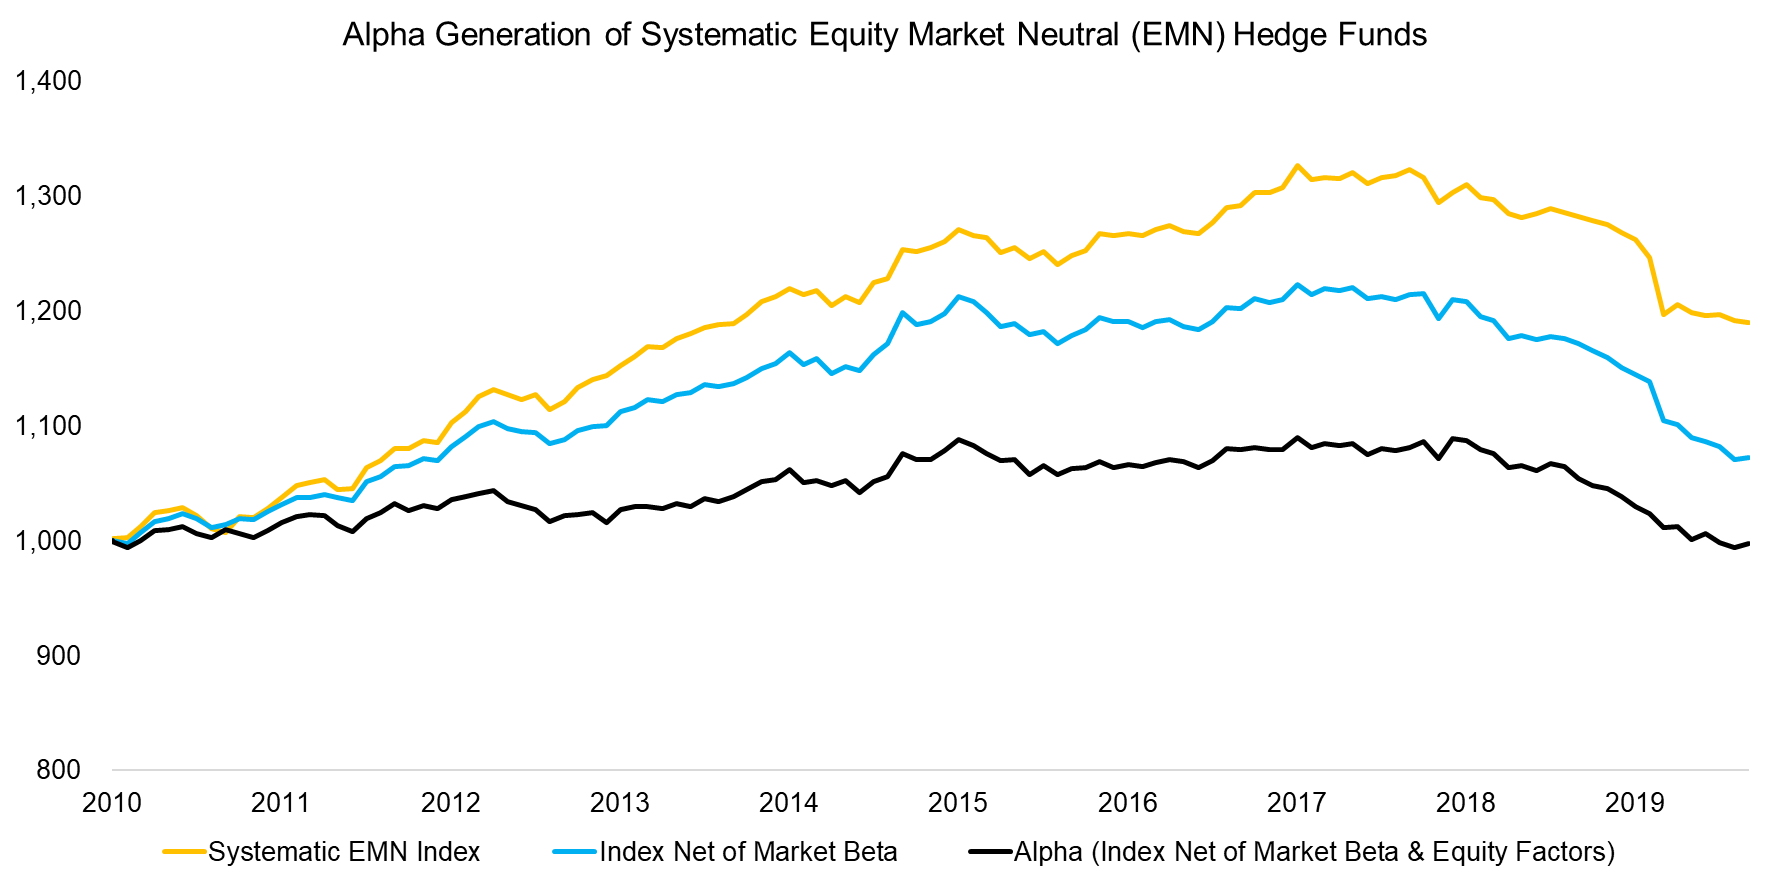 Alpha Generation of Systematic Equity Market Neutral (EMN) Hedge Funds